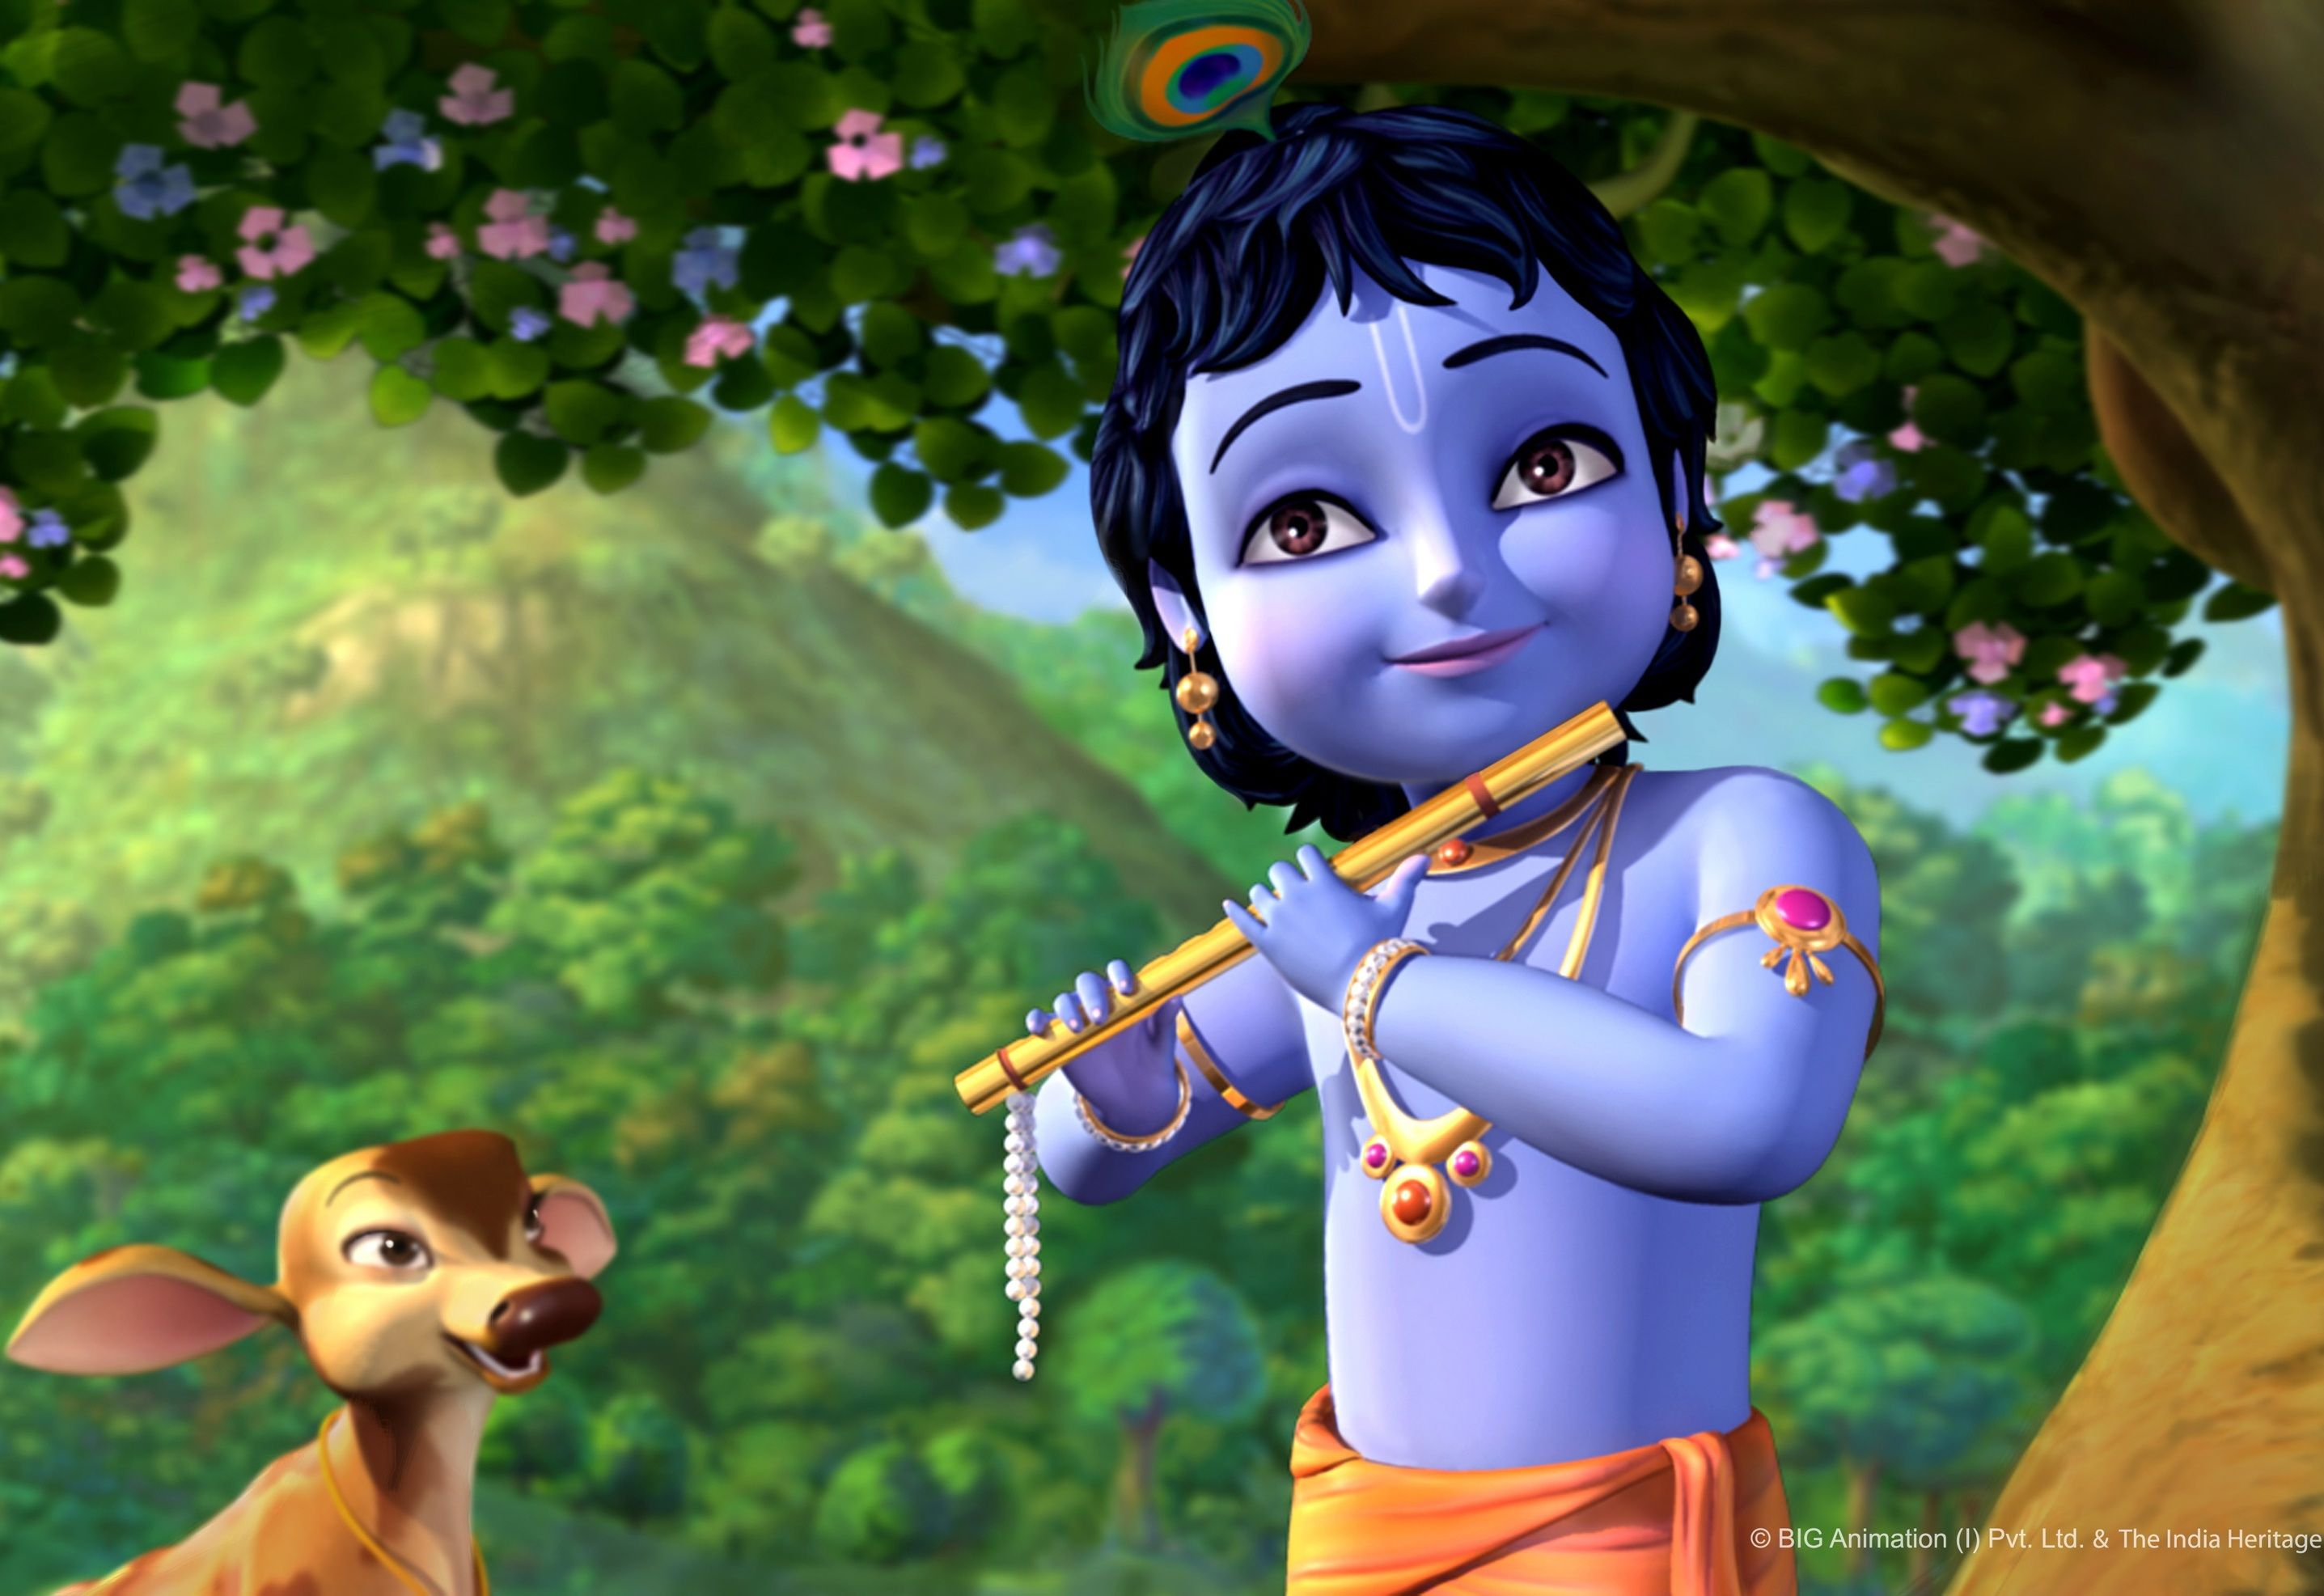 Animated Little Krishna Cartoon Wallpaper Hd Picture 6192883 Wallpaper Cartoons Krishna Cartoon Wallpaper Hd Krishna Wallpaper